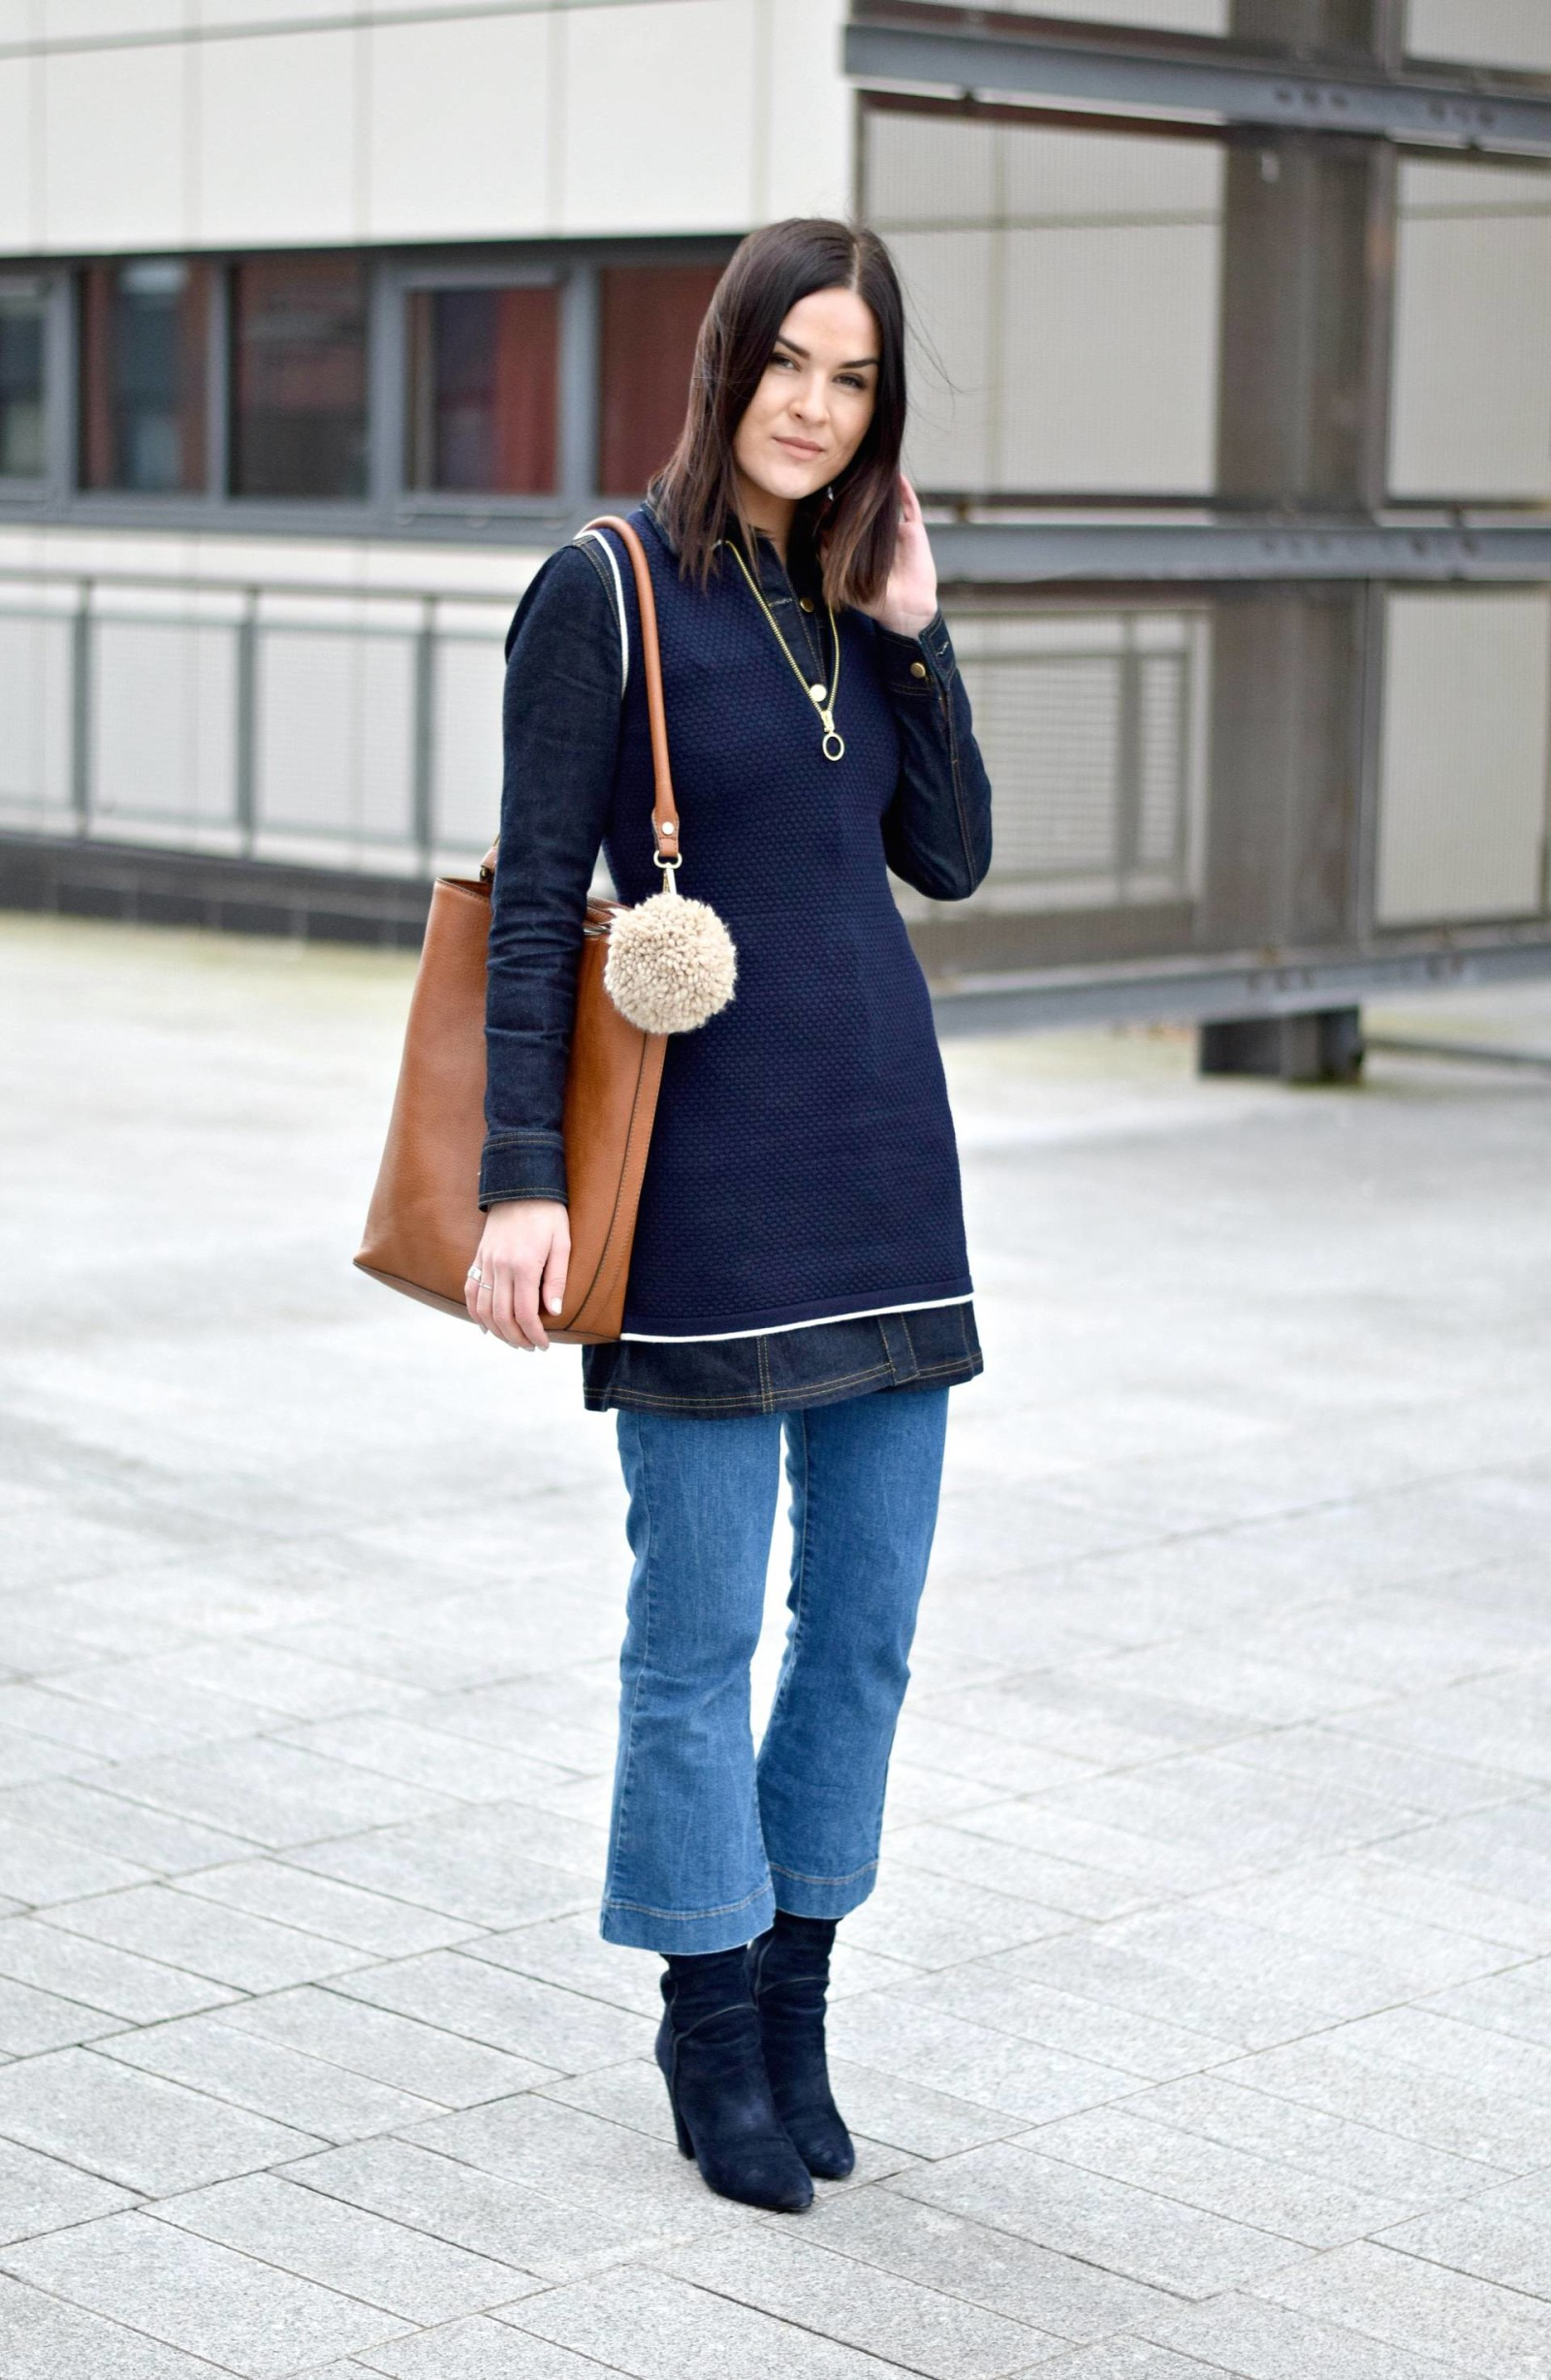 70s denim flare kicks & retro waistcoat - LAFOTKA Fashion BLogger 5